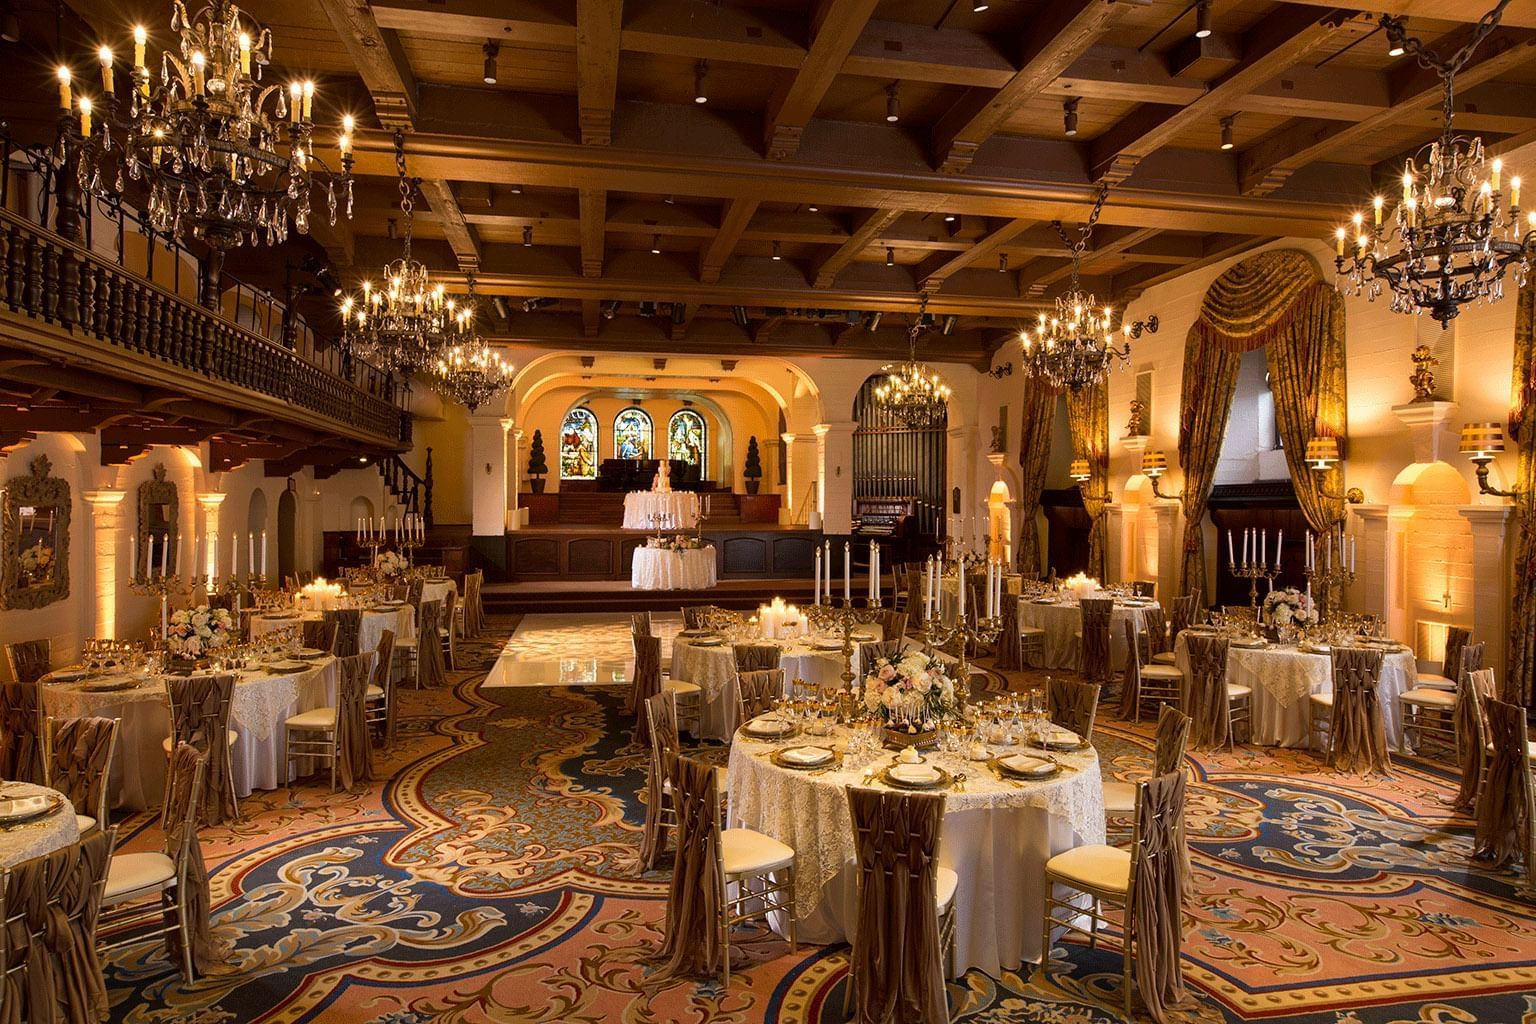 grand parisian ballroom with chandeliers and decorated tables